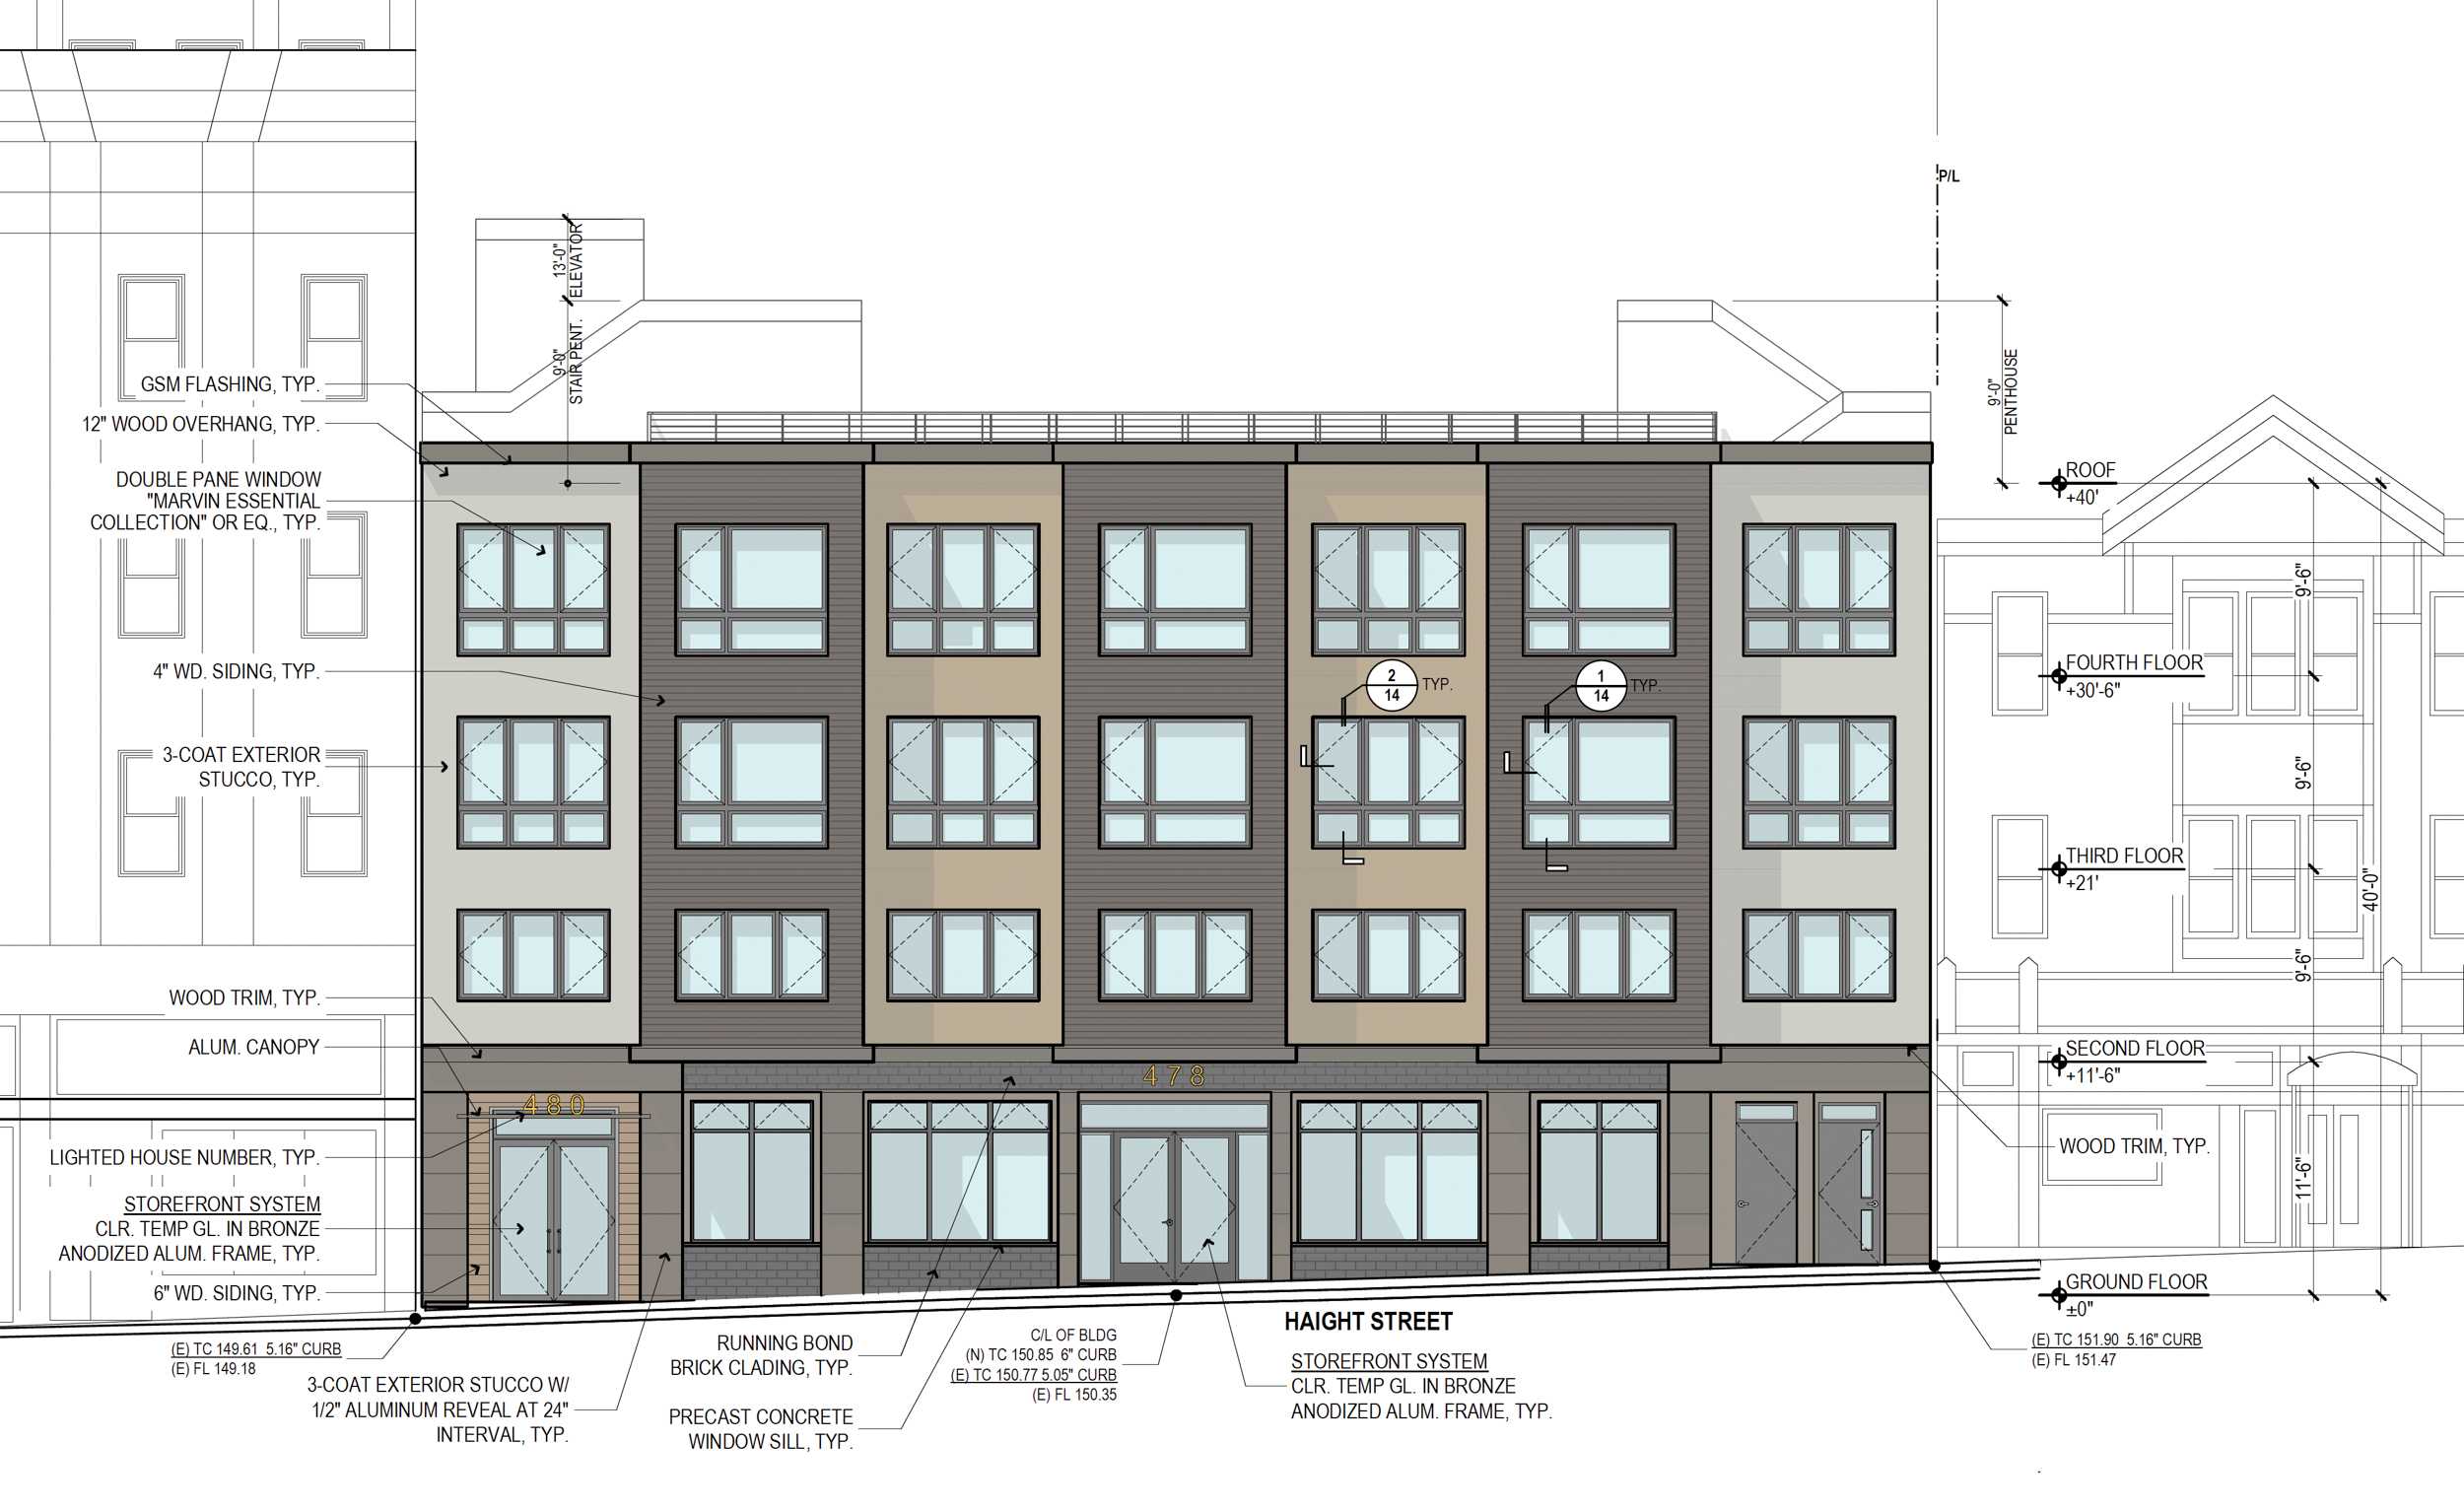 478-484 Haight Street vertical elevation, drawing by Schaub Ly Architects